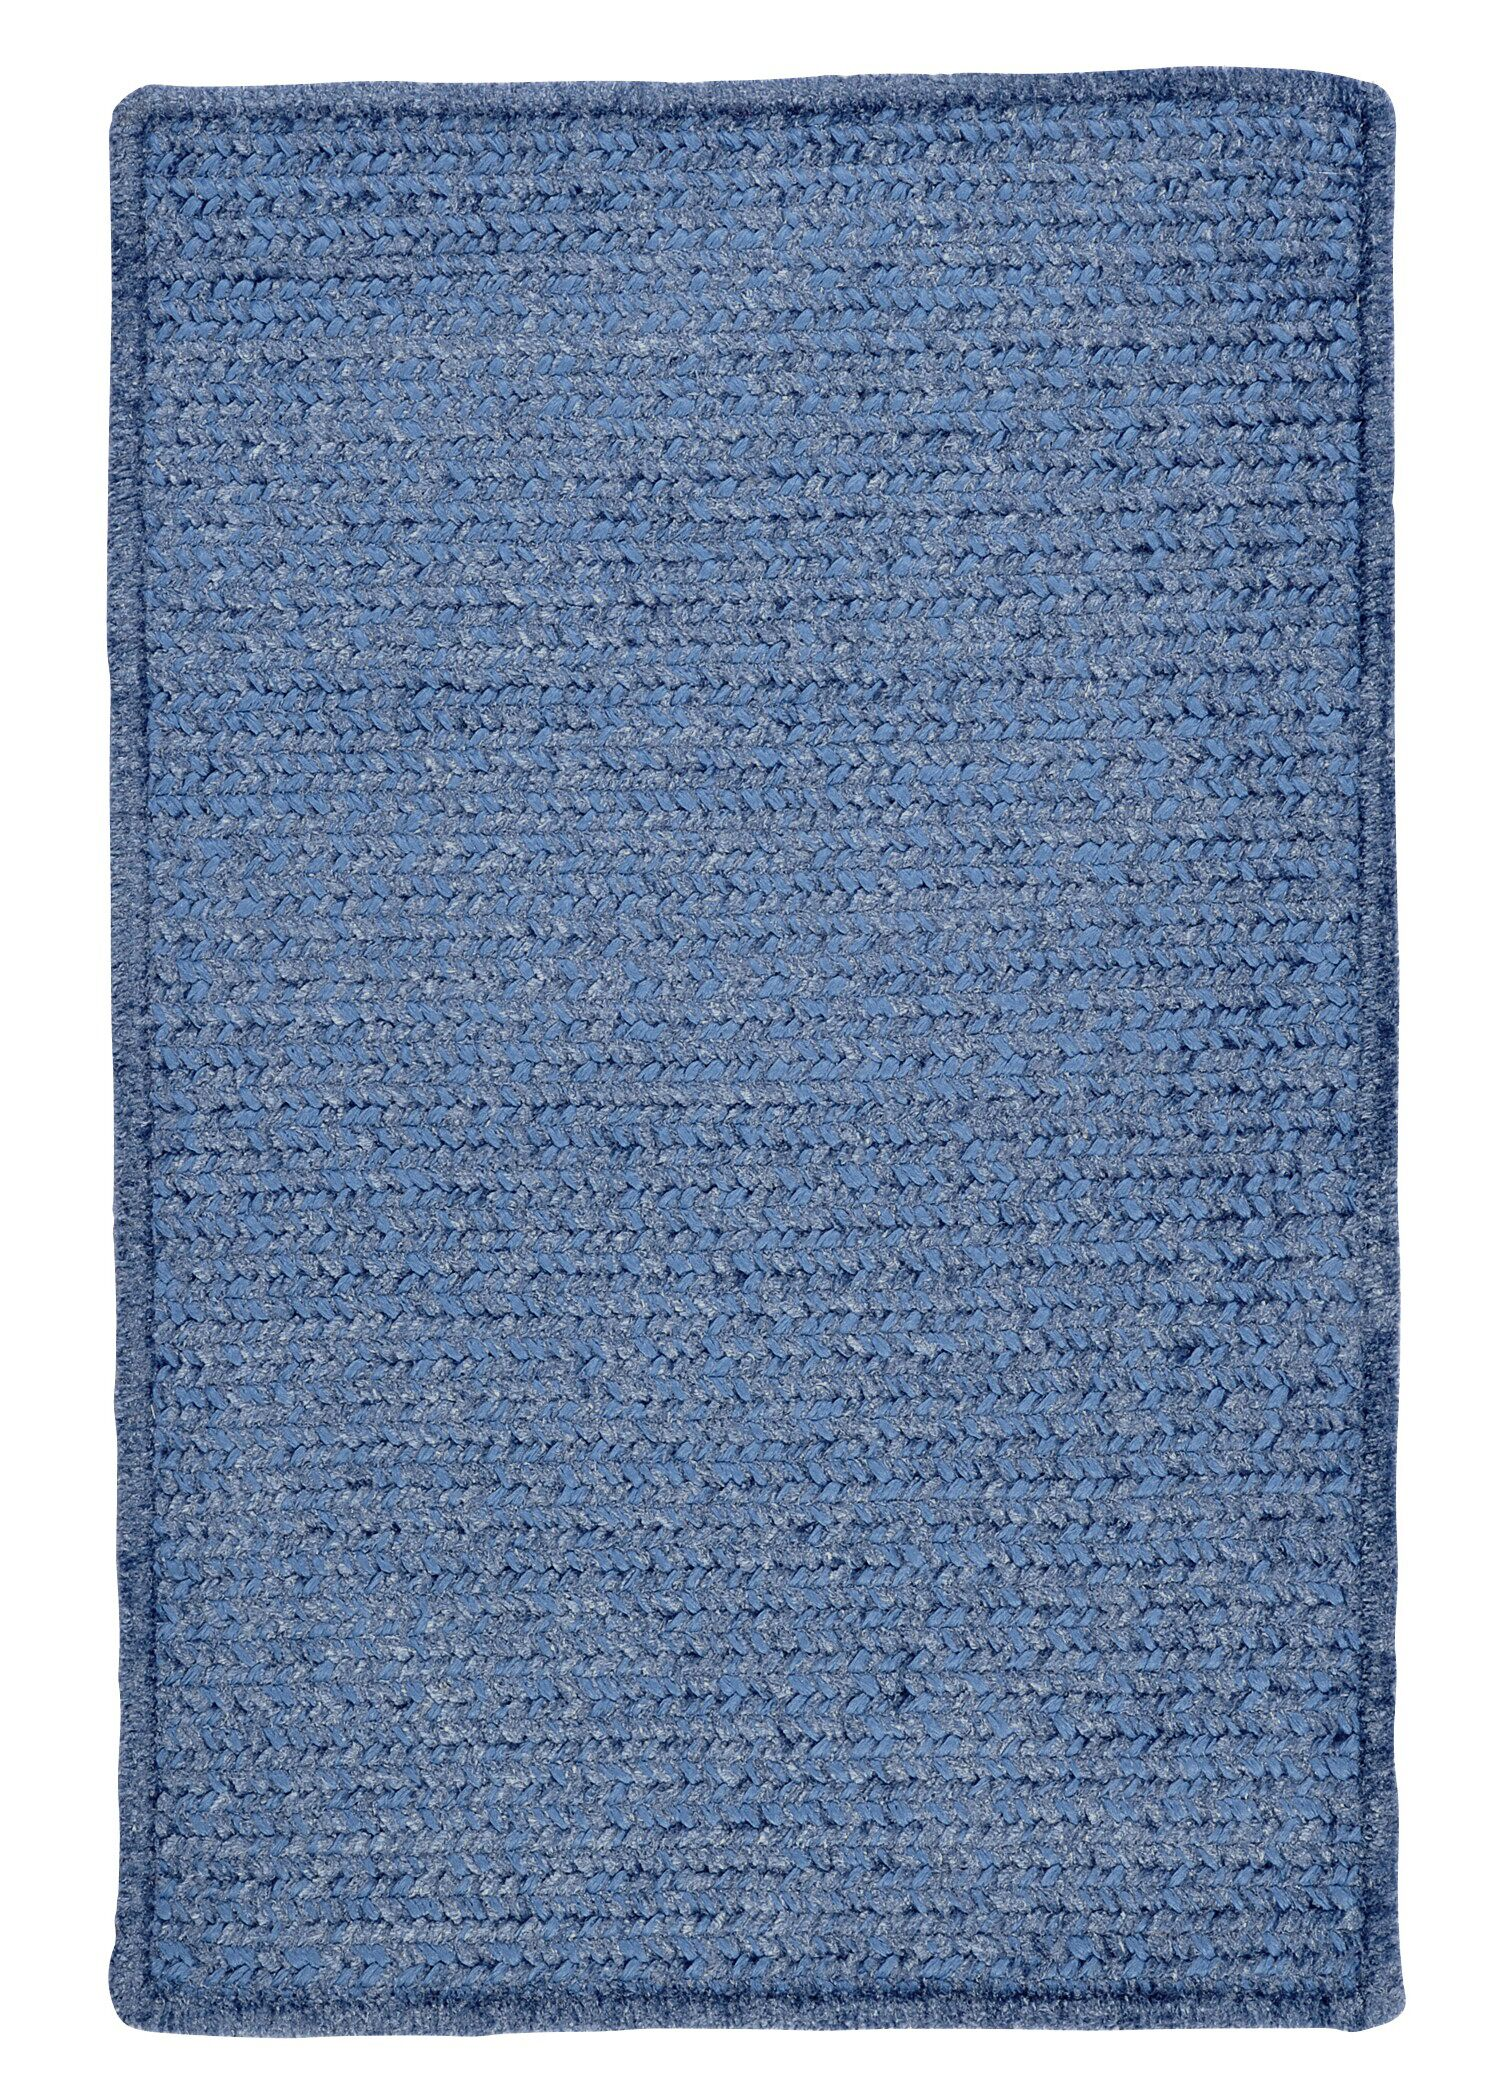 Gibbons Petal Blue Indoor/Outdoor Area Rug Rug Size: Square 8'